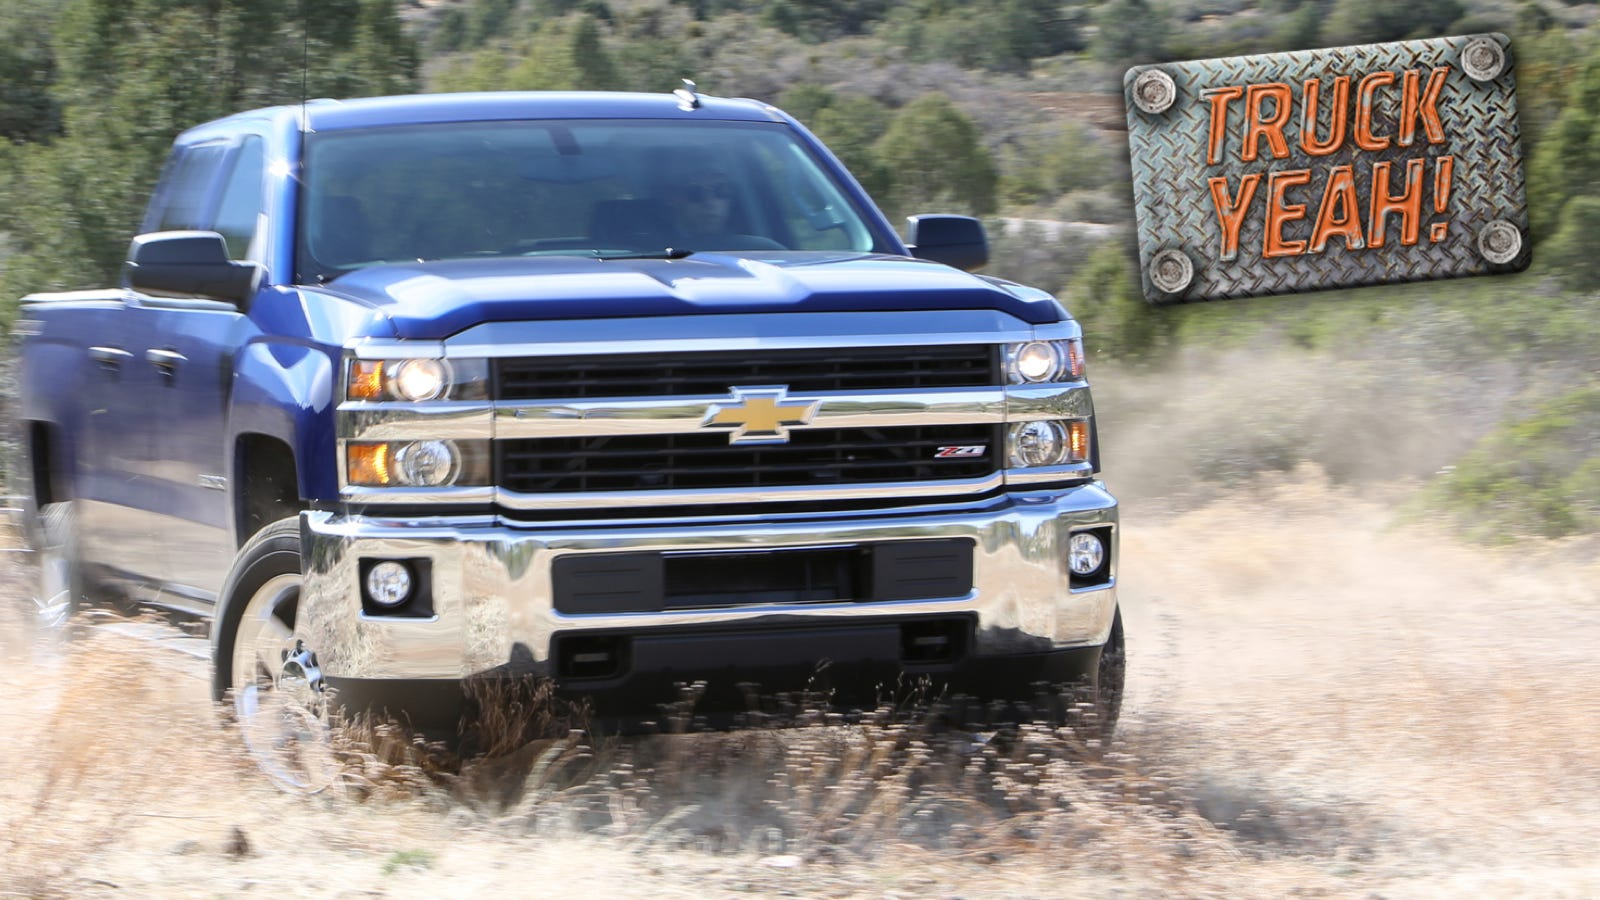 2015 Silverado & Sierra 2500 HD 4WD Crew Cab: The Truck Yeah! Review